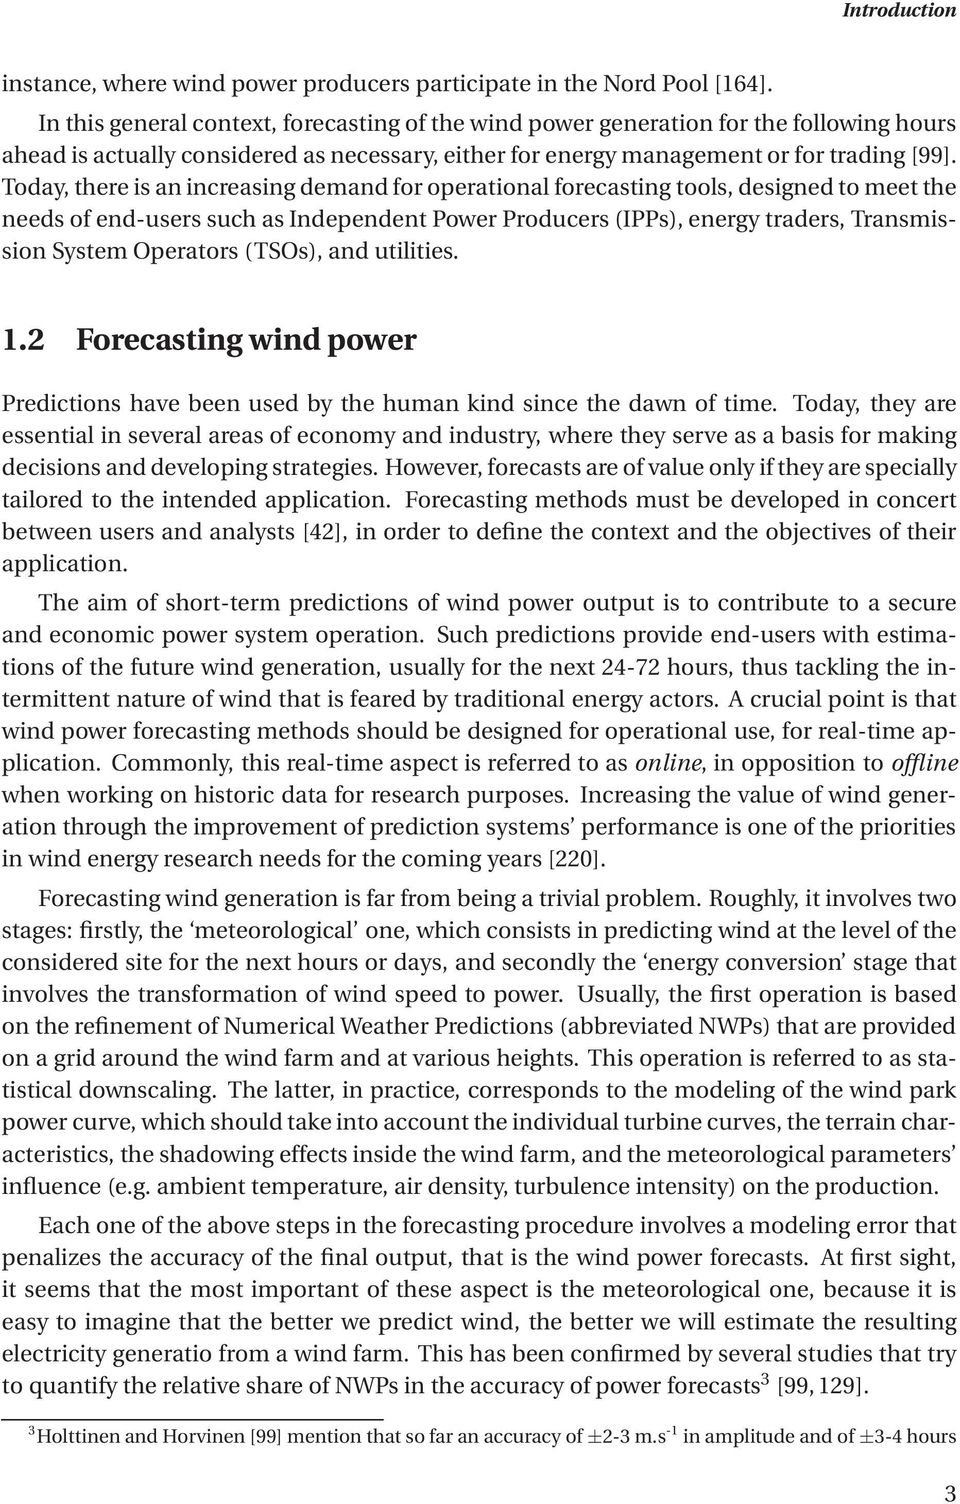 Today, there is an increasing demand for operational forecasting tools, designed to meet the needs of end-users such as Independent Power Producers (IPPs), energy traders, Transmission System